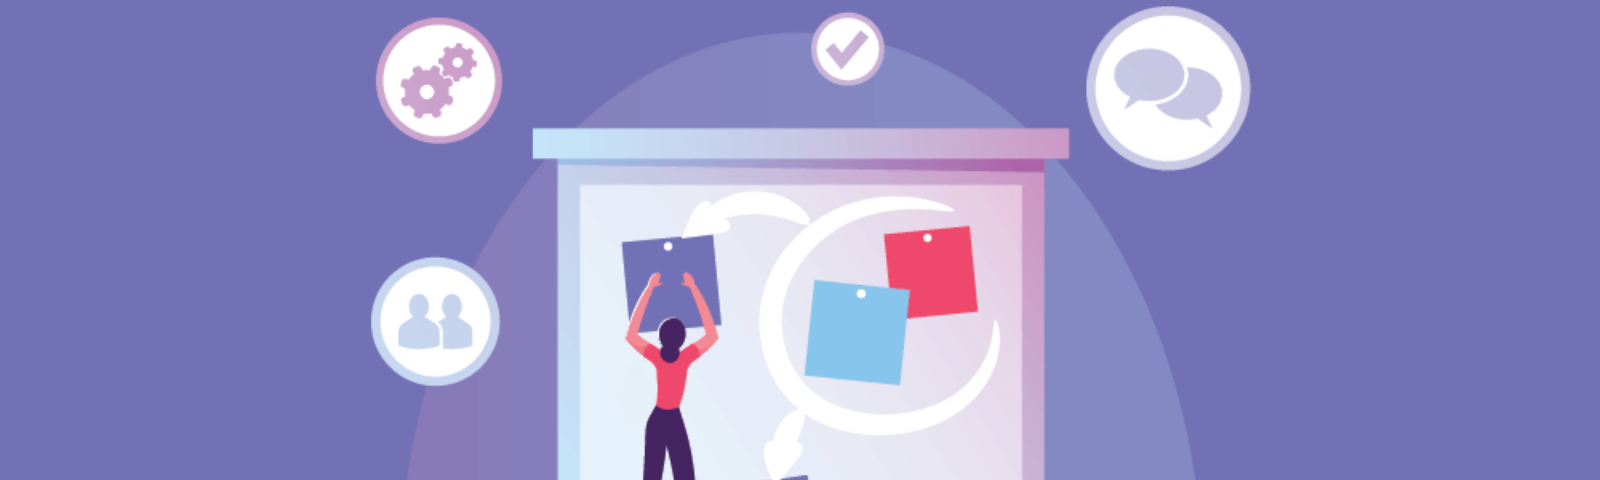 10 Best Apps On Task Management For Mac In 2020 New Guide Ntask